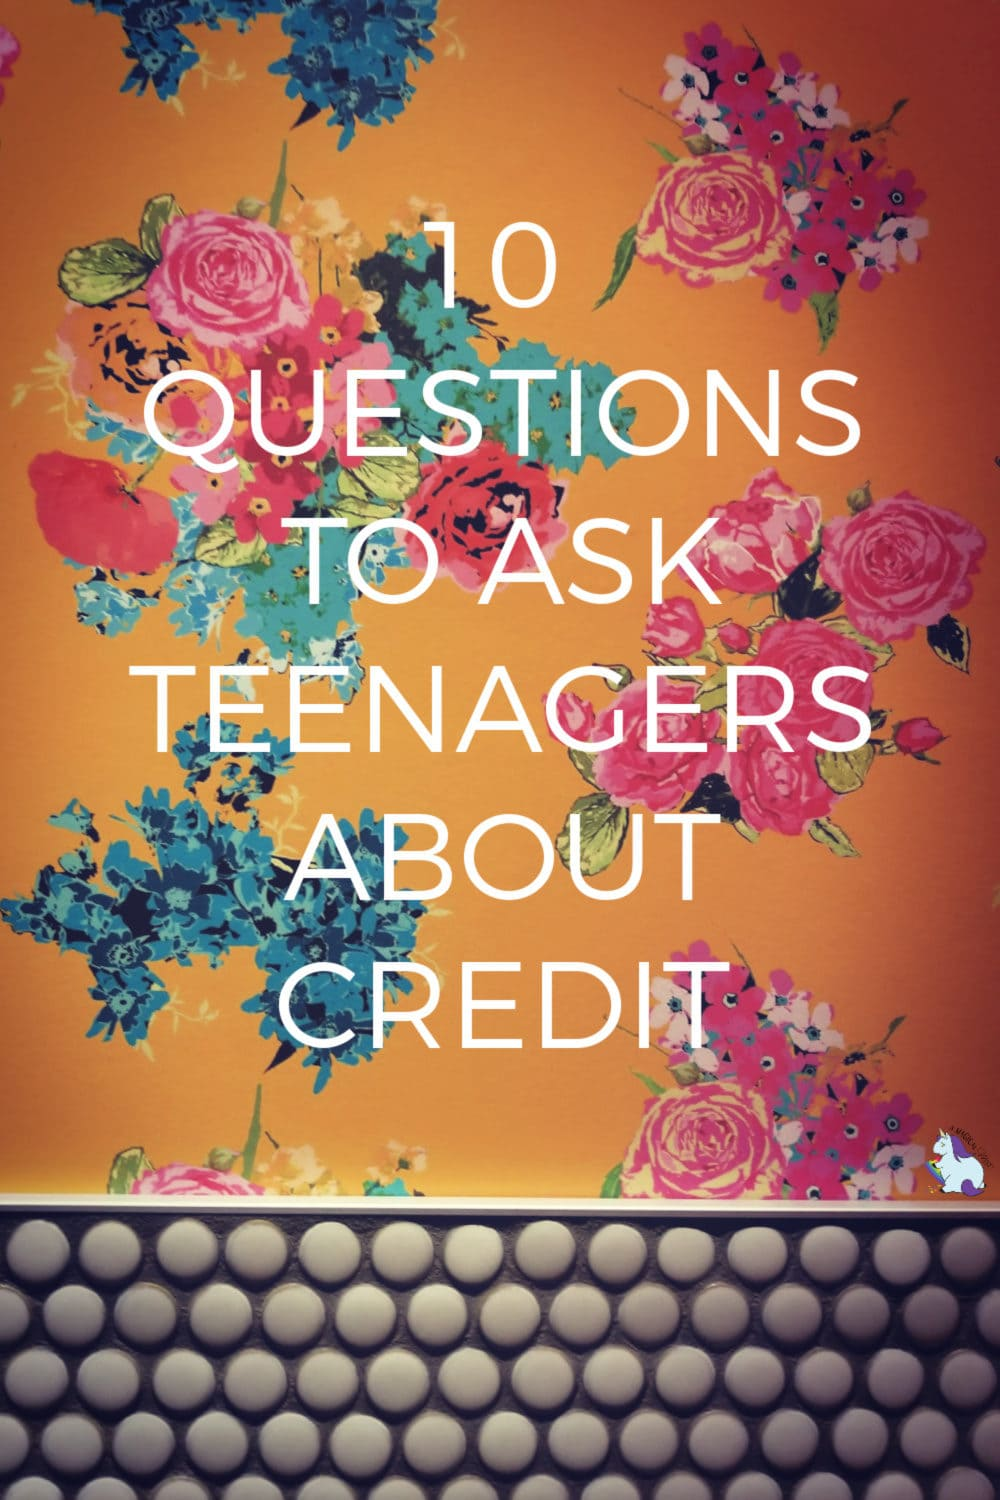 10 Questions to ask Teenagers About Credit on floral background